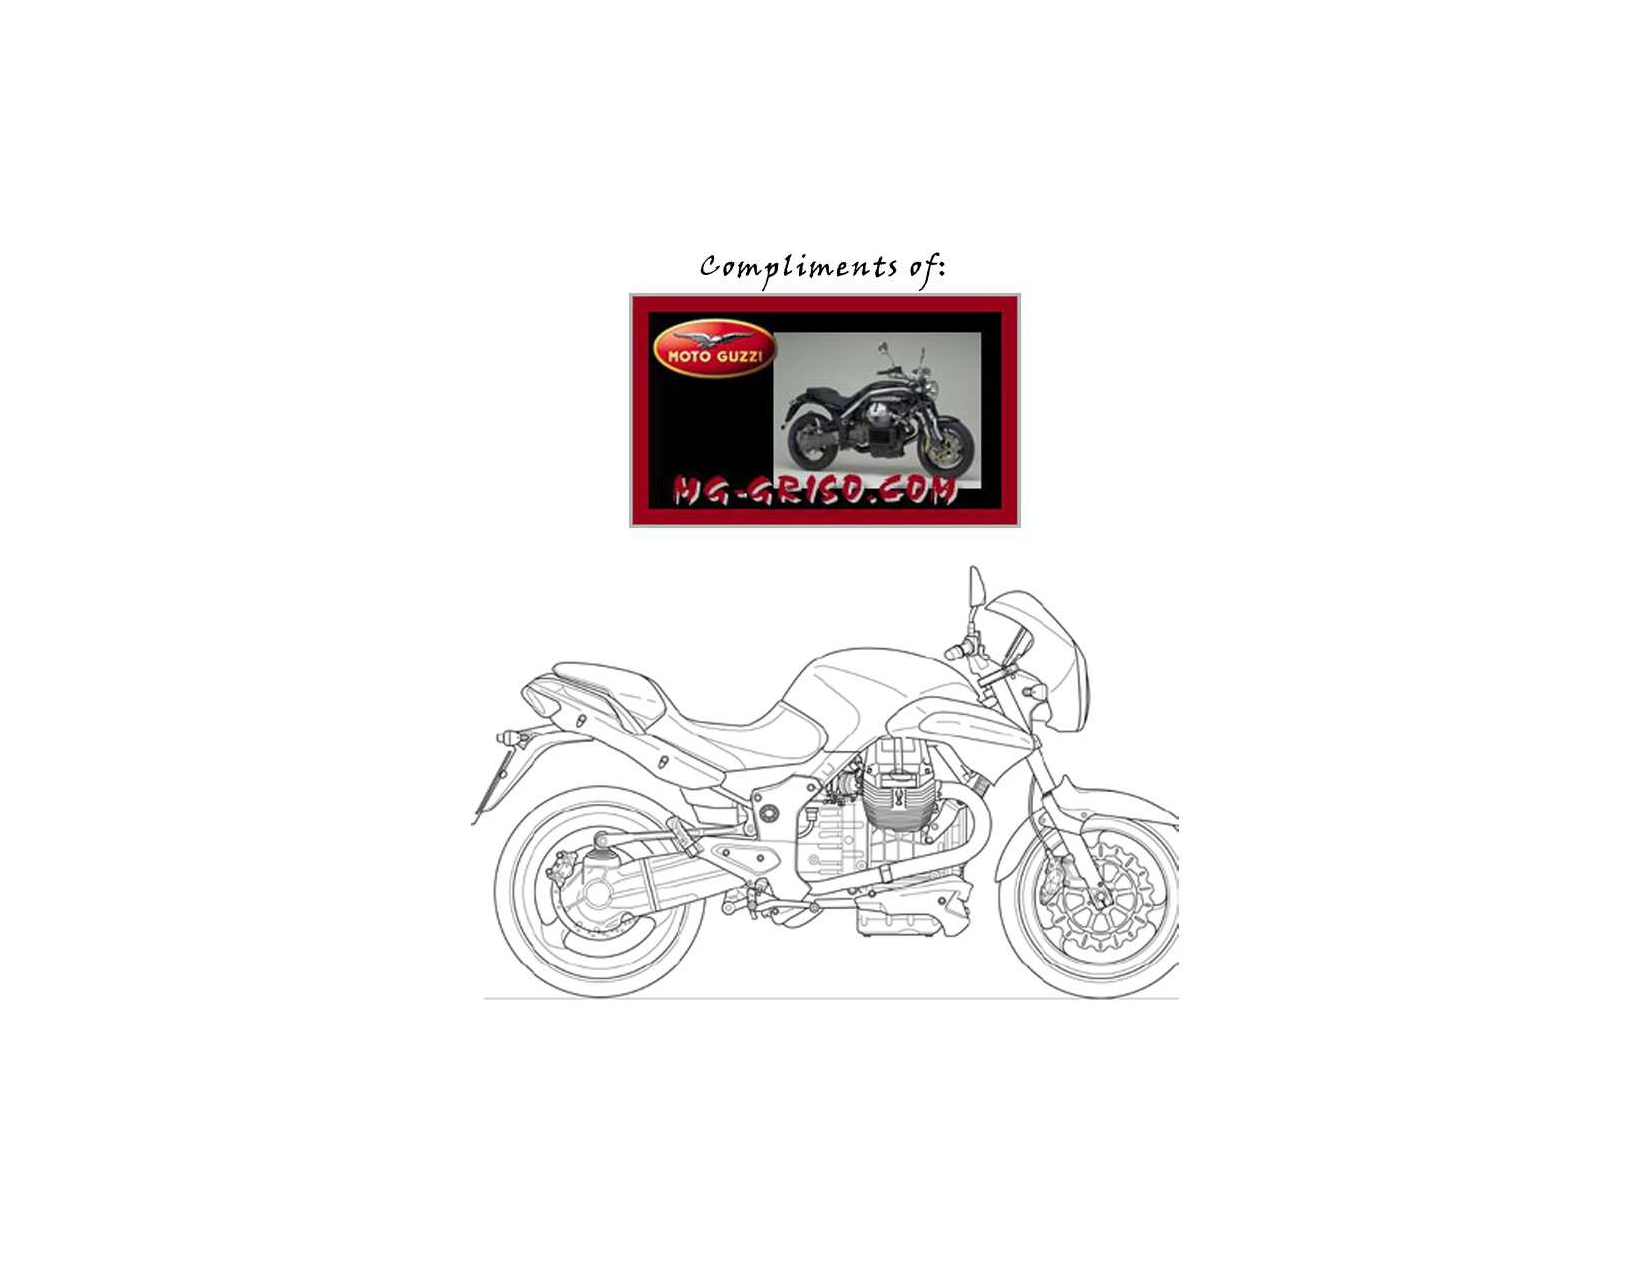 Moto Guzzi 1200 Sport 2006 Parts List PDF Download